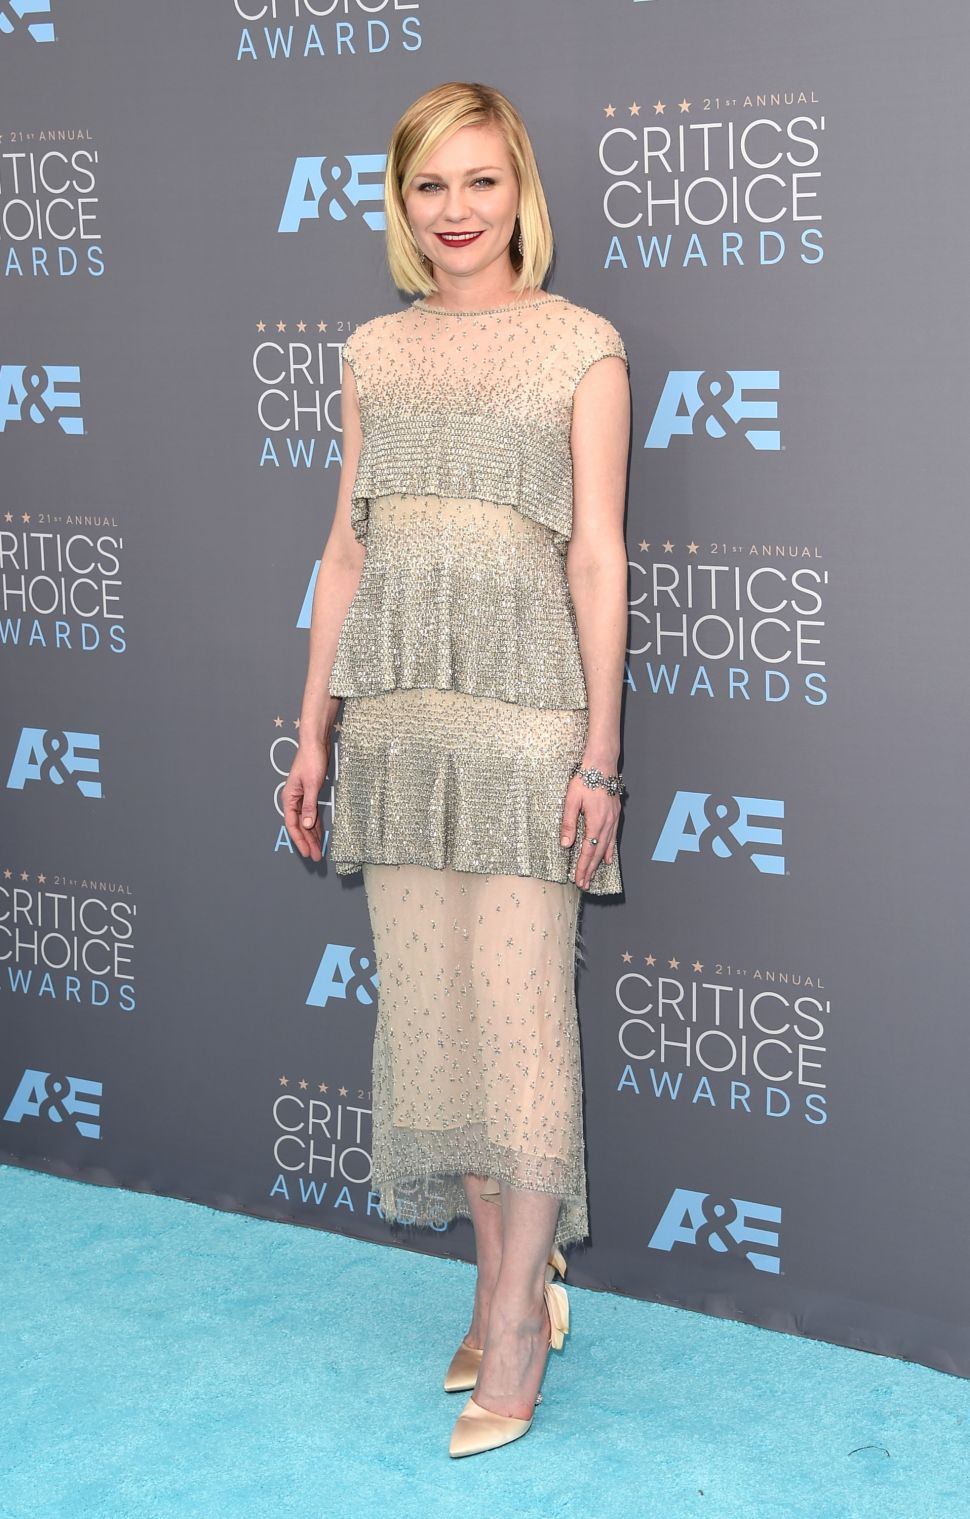 Ten Outstanding Looks From the 2016 Critics' Choice Awards